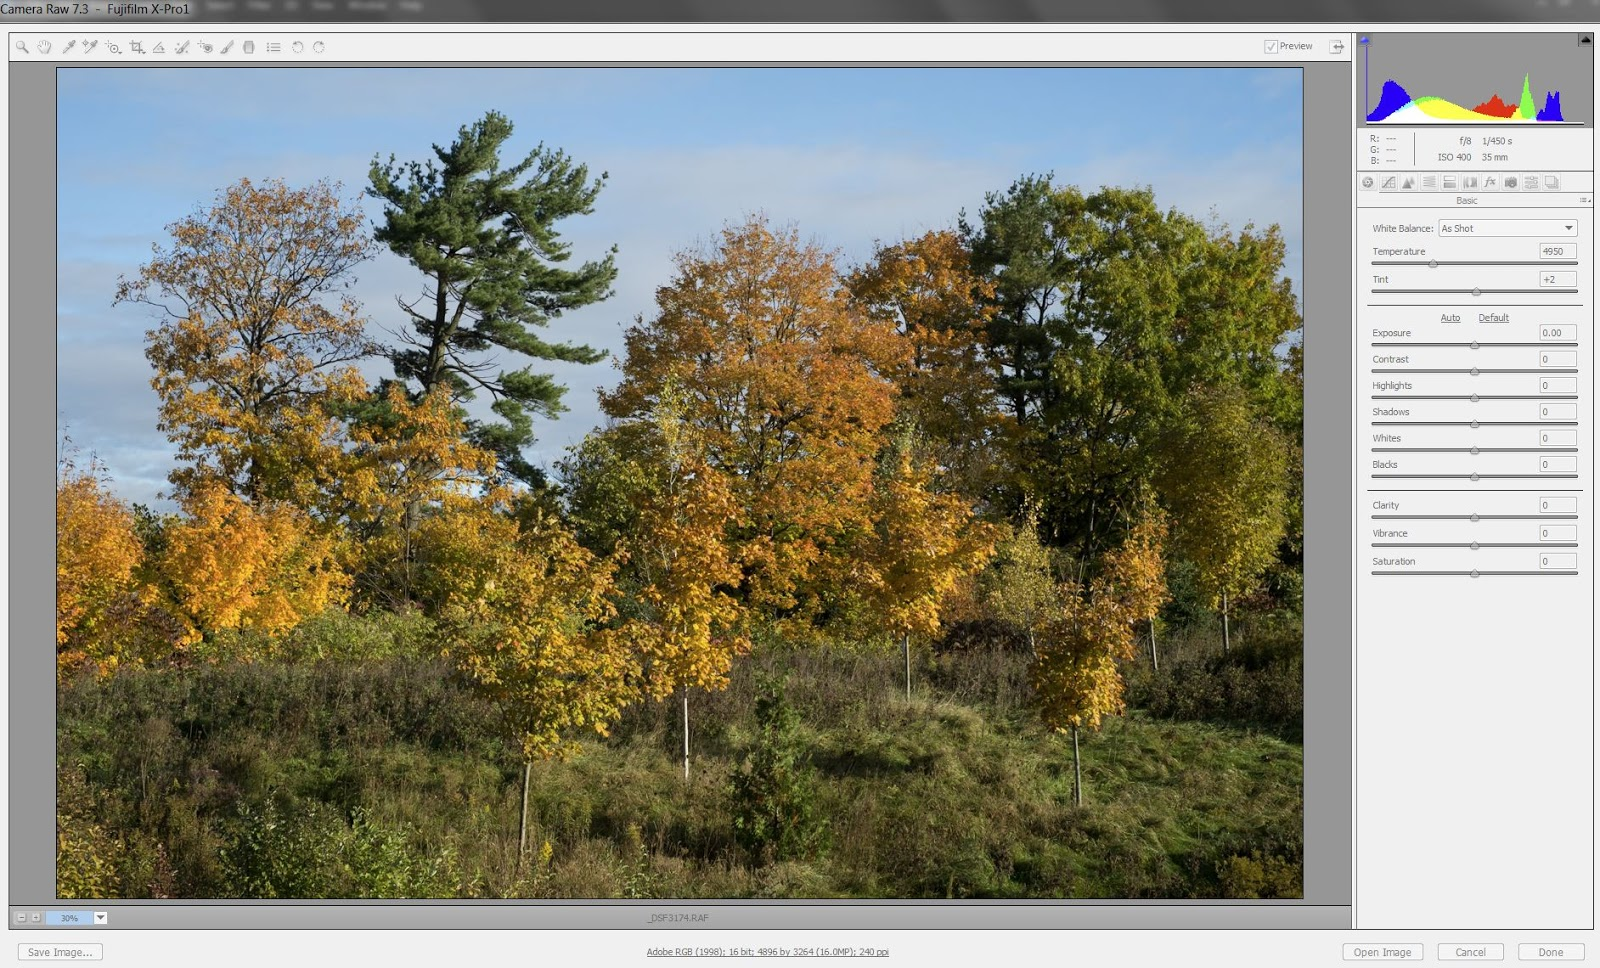 vk photo blog: Capture One Pro 7 0 2 (beta) with X-Trans support